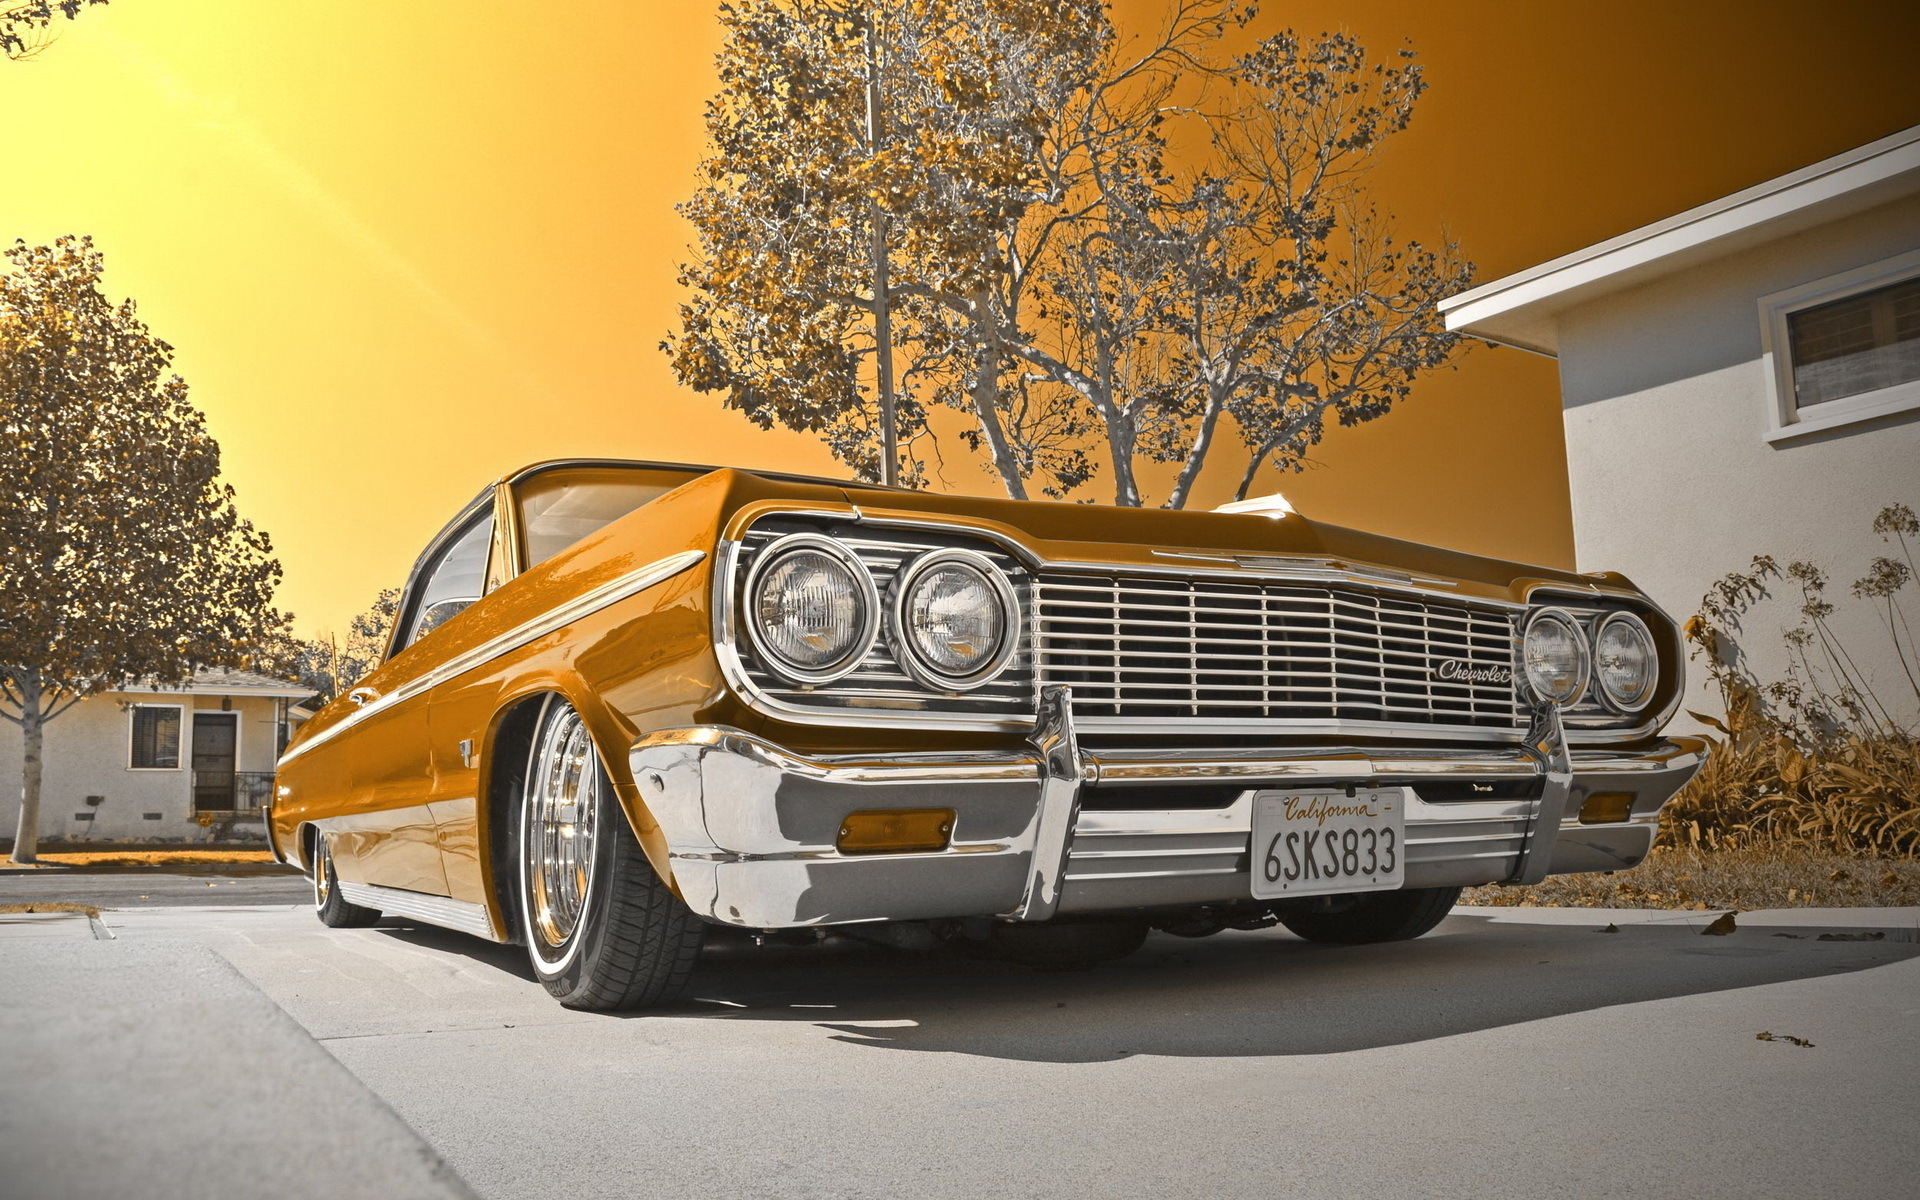 1964 Chevy impala lowrider muscle cars tuning wallpaper 1920x1200